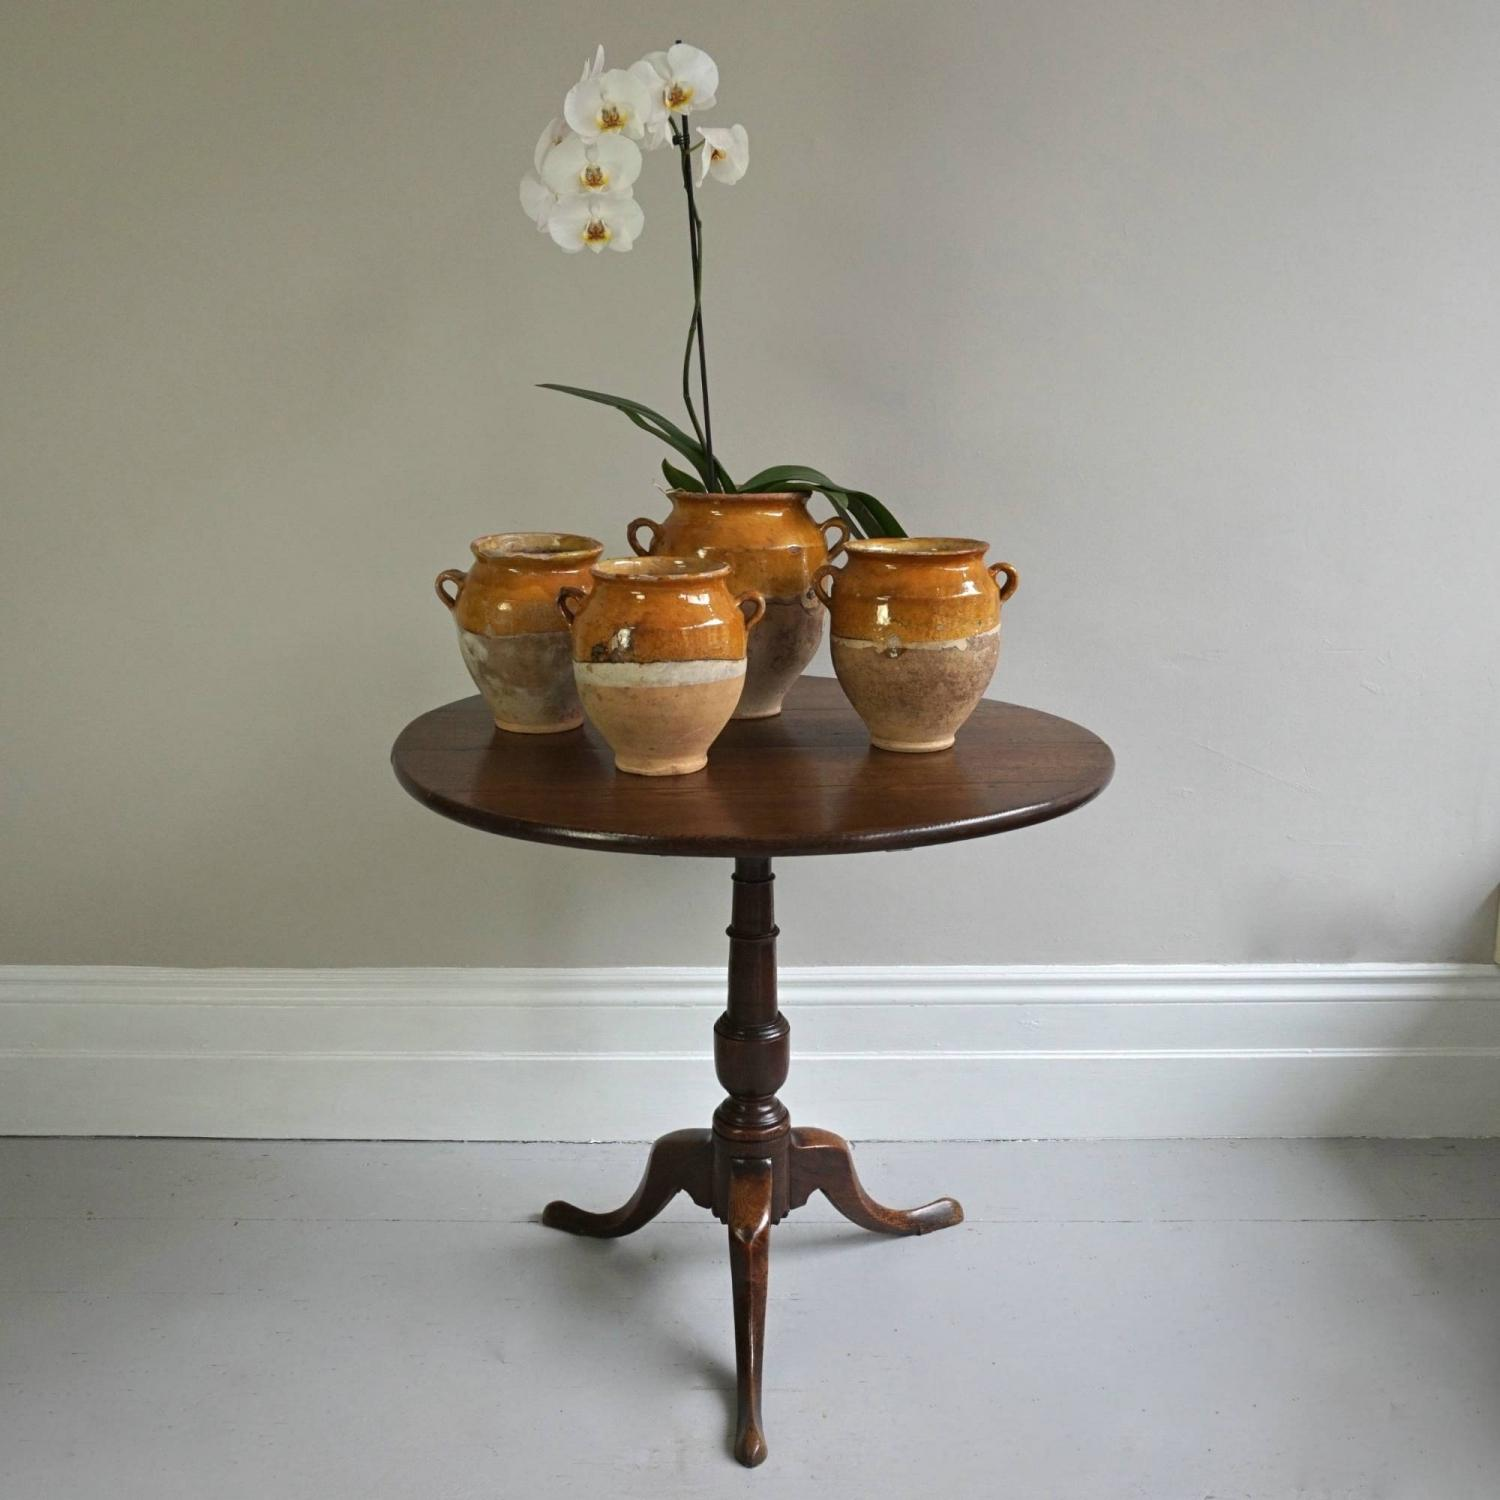 18TH CENTURY GEORGIAN TILT TOP OCCASIONAL TABLE